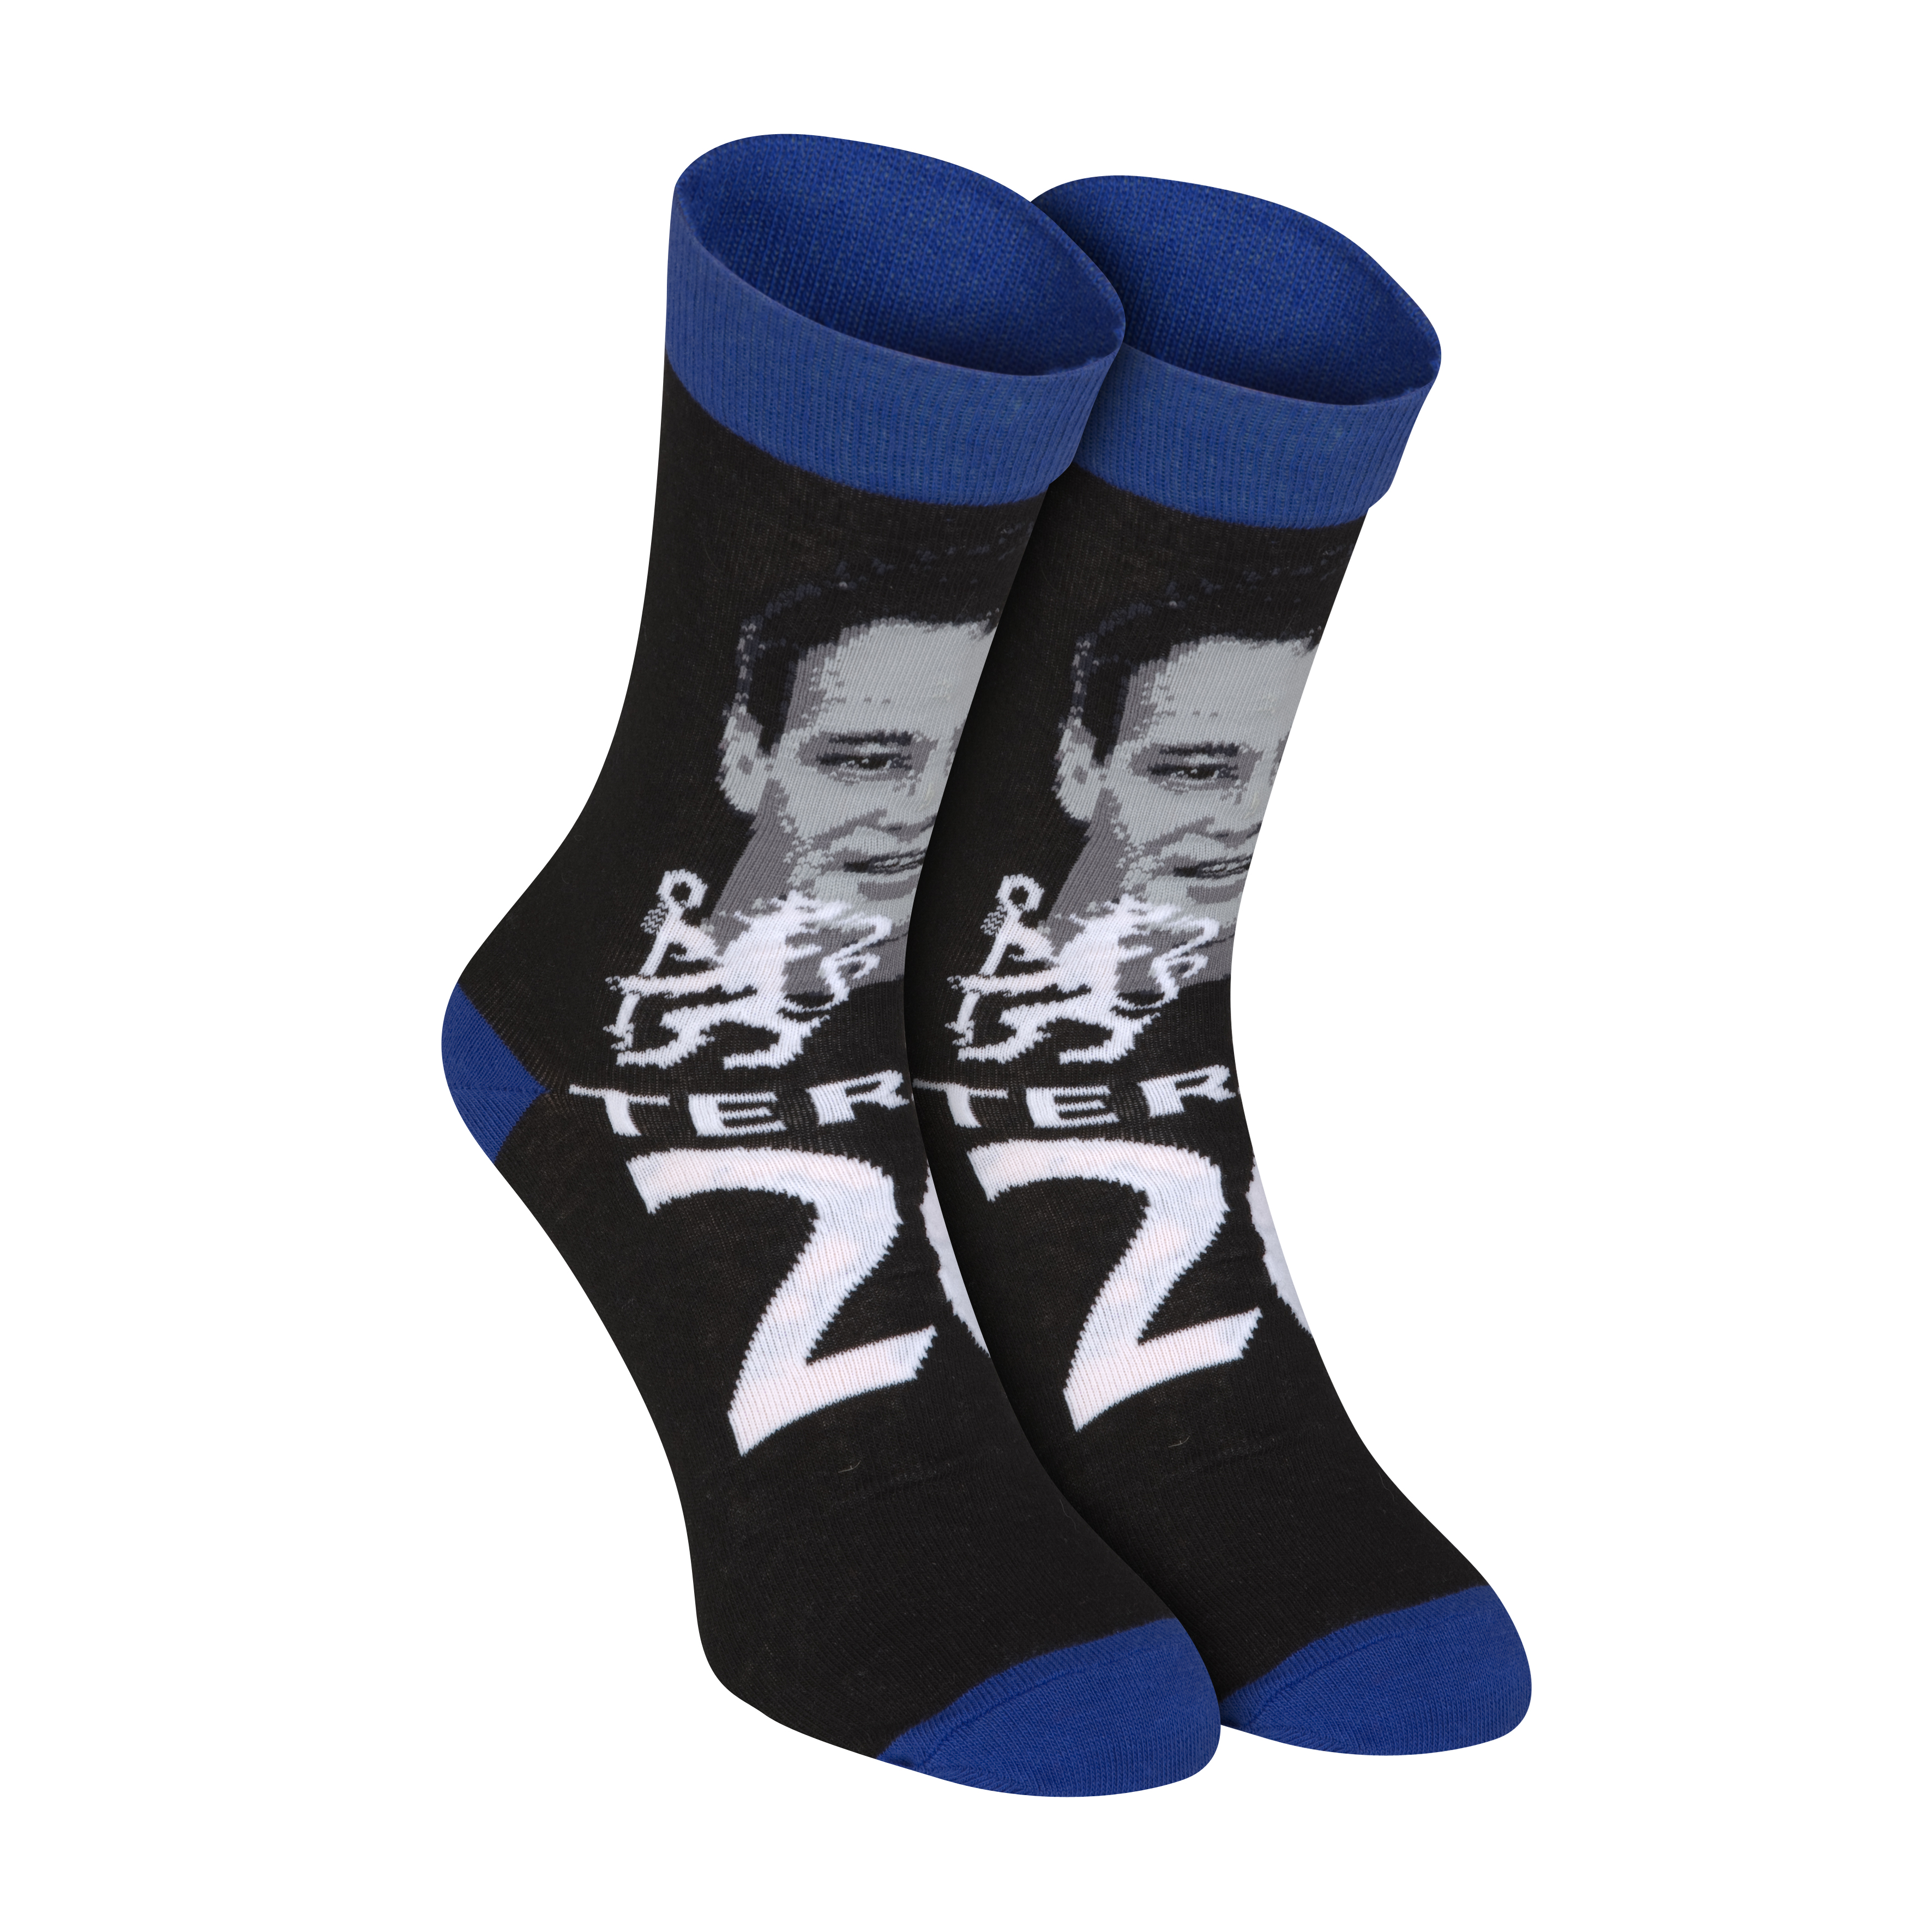 Chelsea Terry Socks - Black